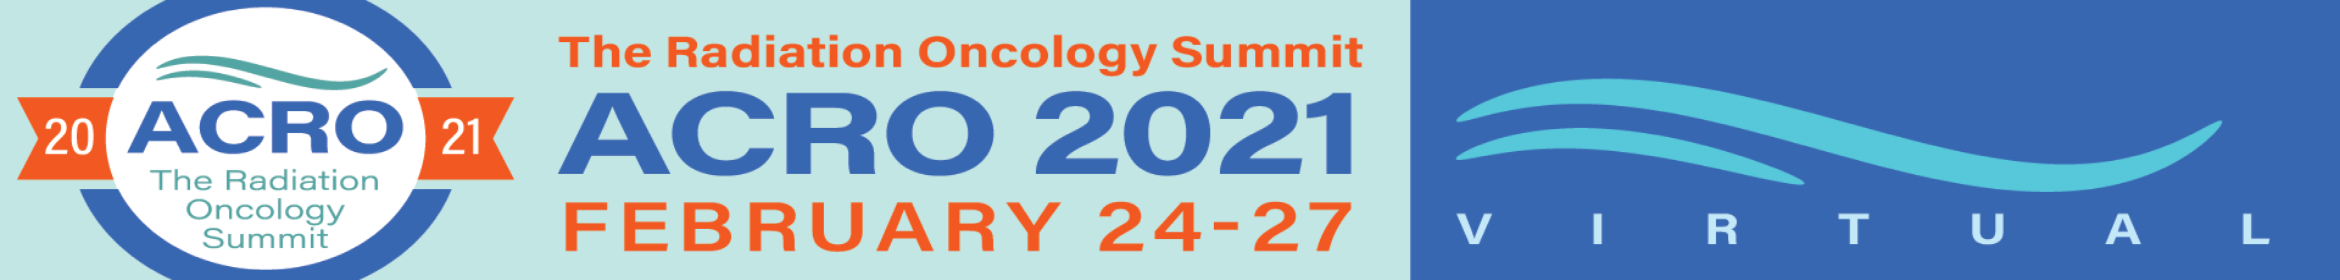 The Radiation Oncology Summit ACRO Annual Meeting 2021 Main banner